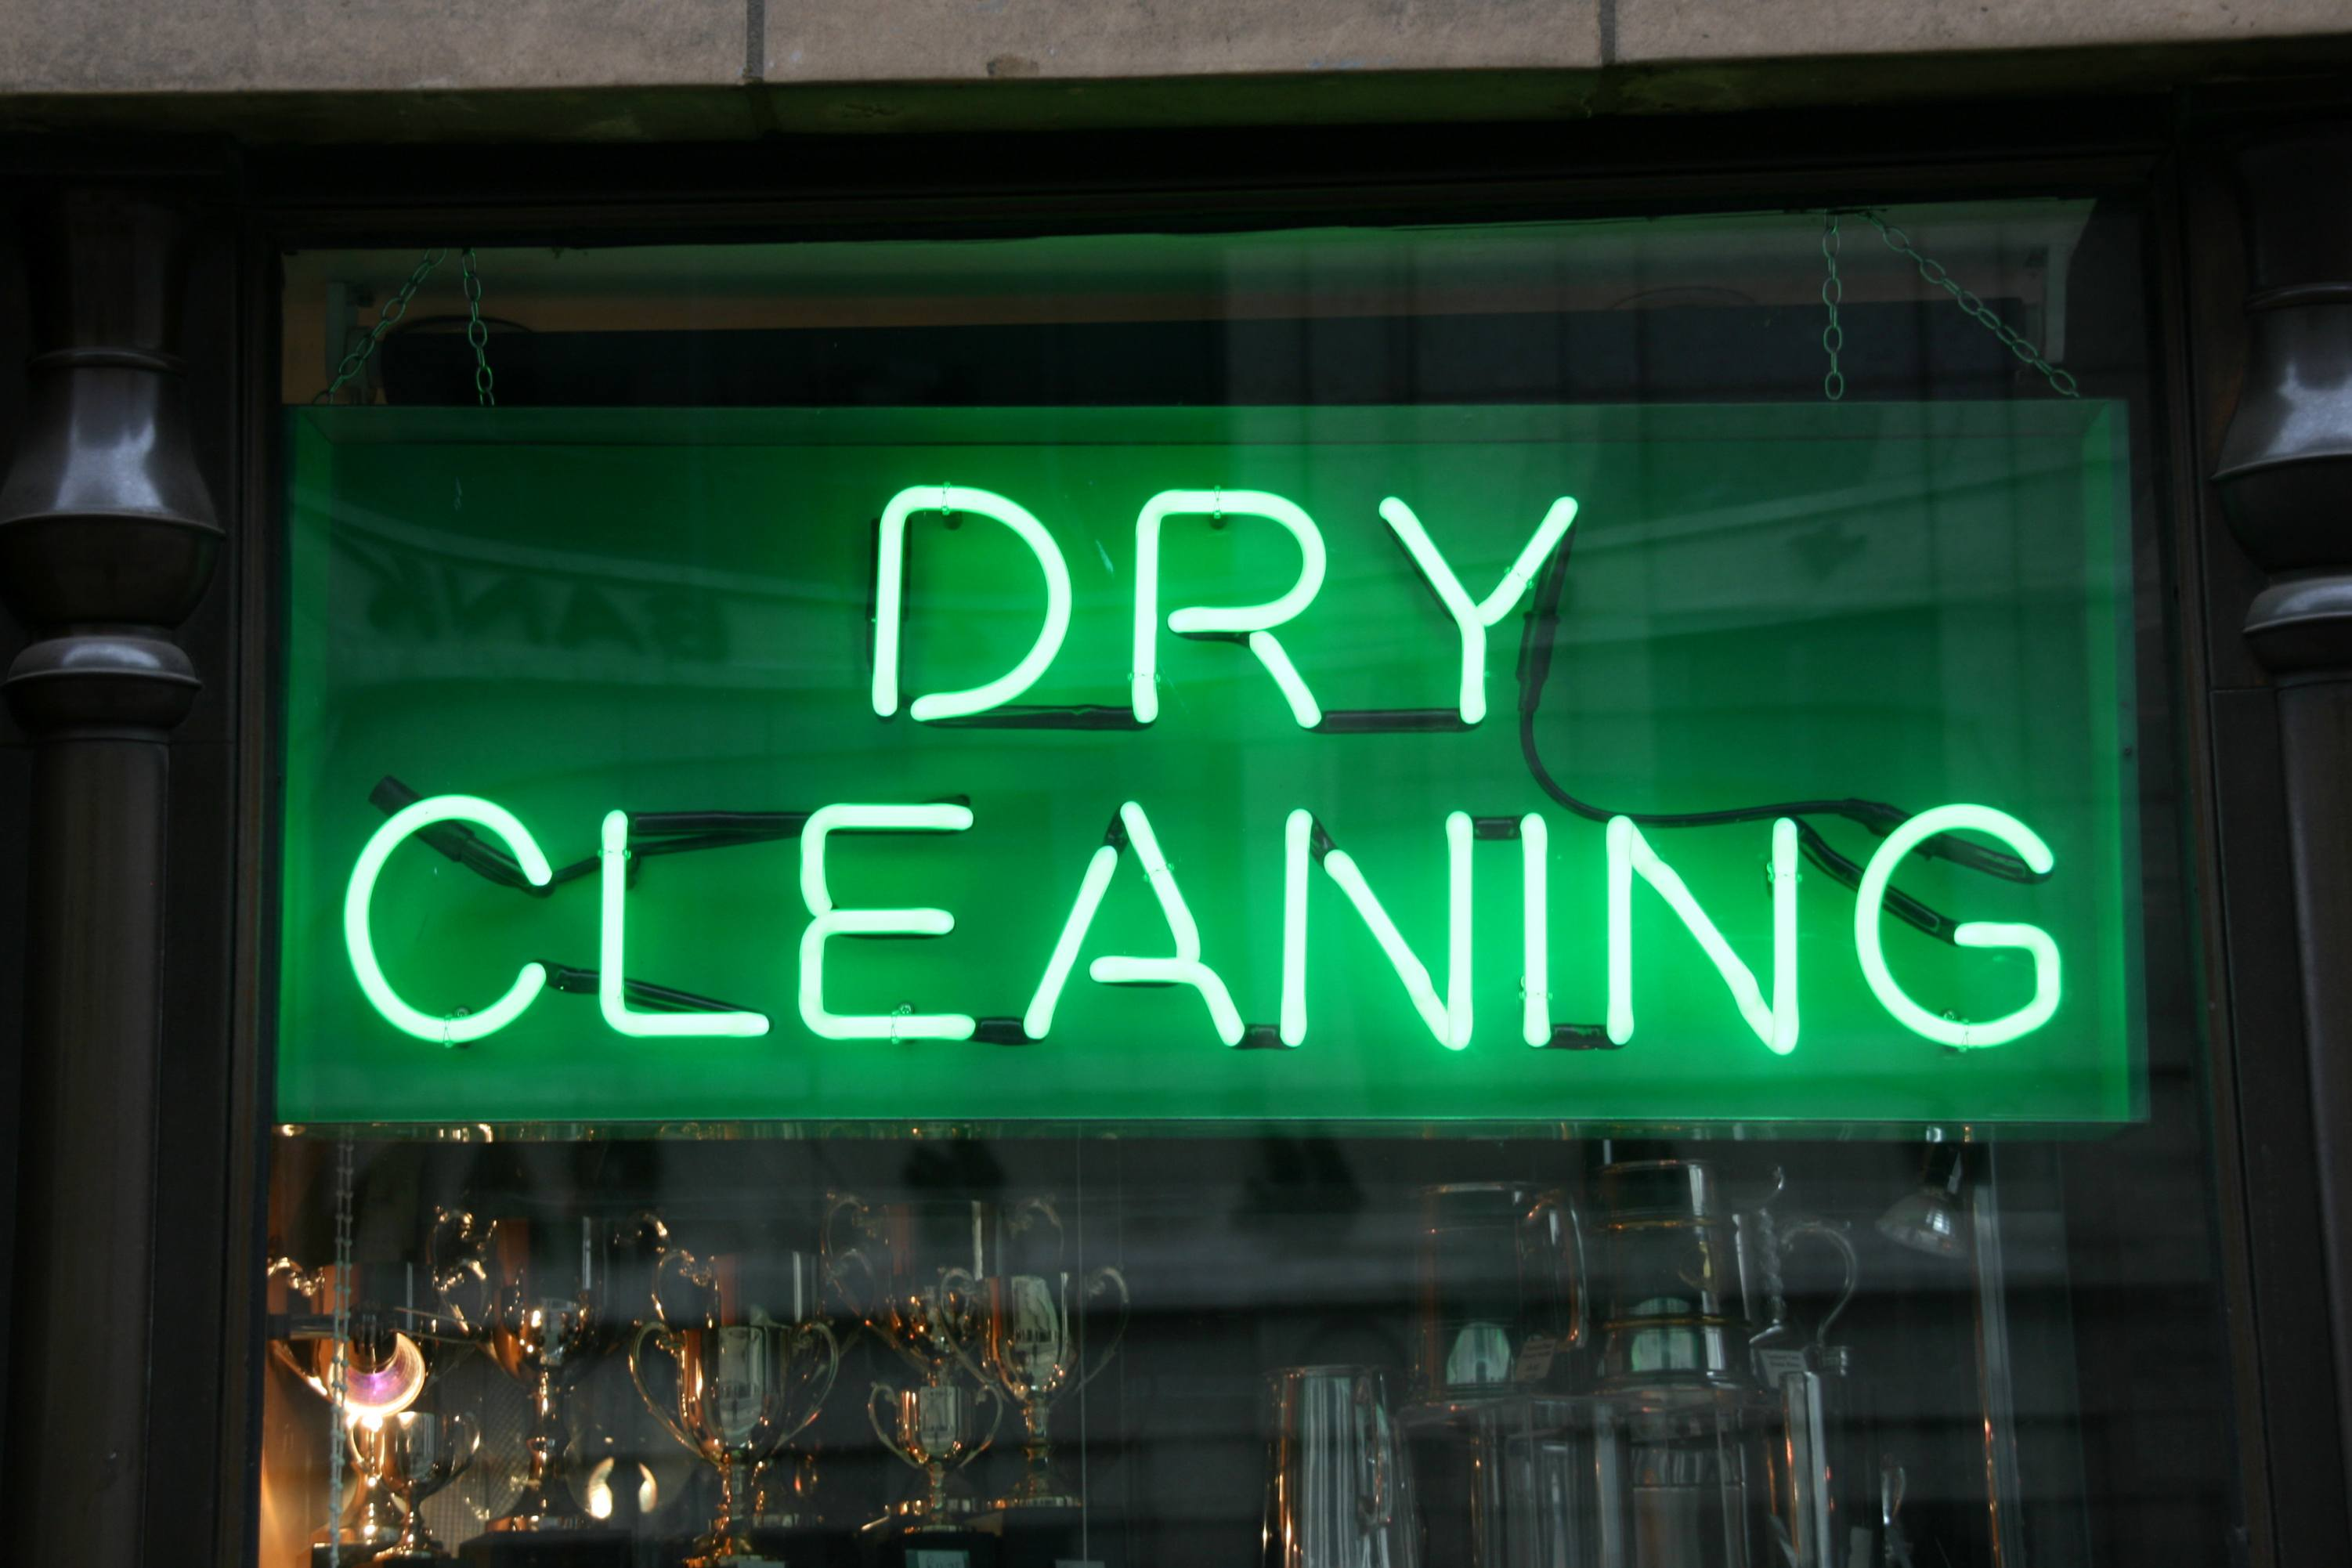 Close-up of a neon green dry cleaning sign in a window